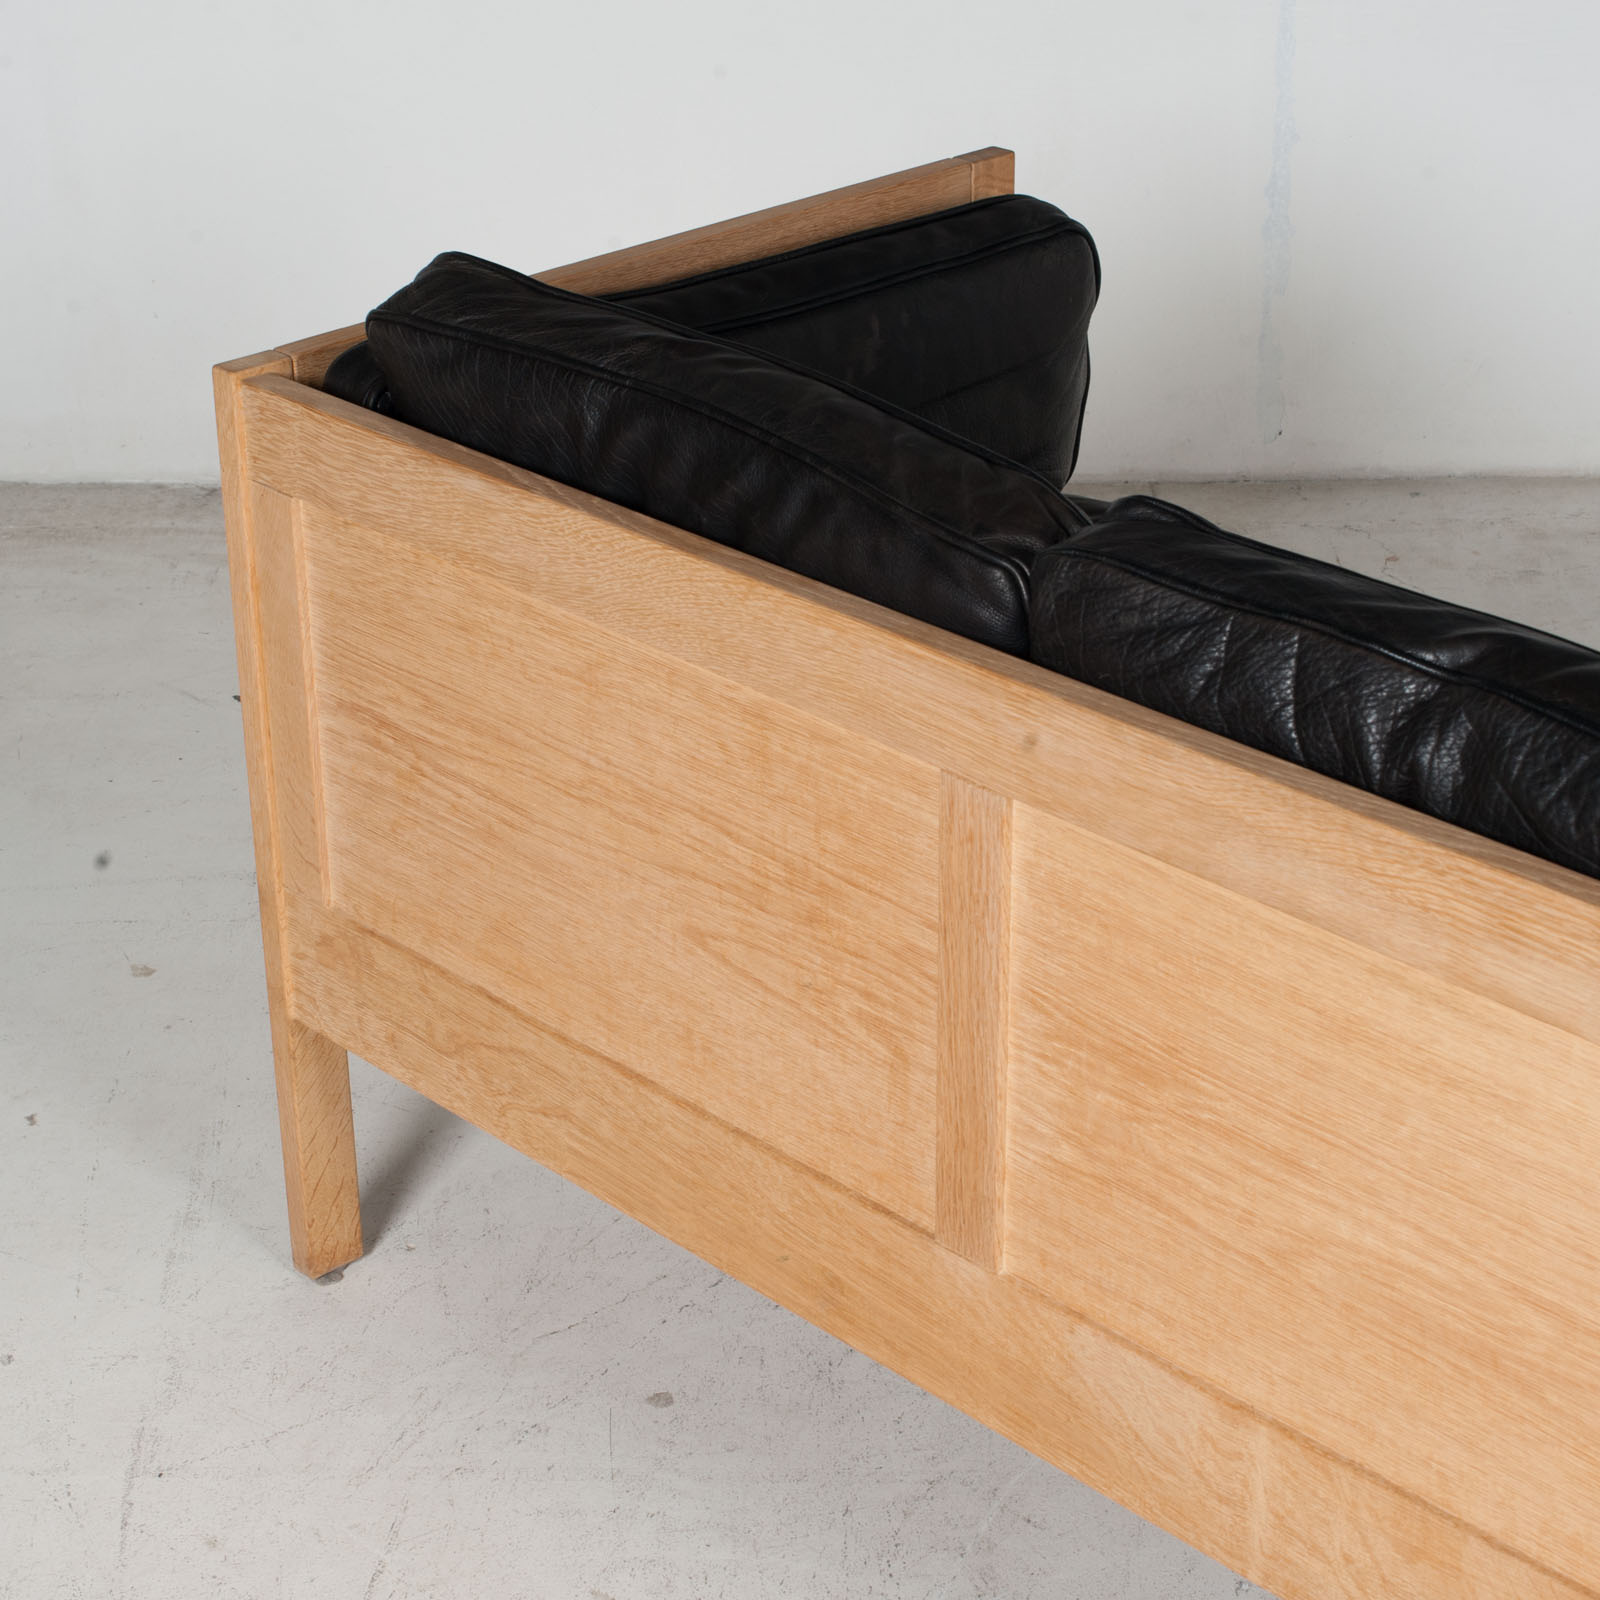 3 Seat Sofa By Borge Mogensen For Frederica In Black Leather And Oak, 1960s, Denmark 13